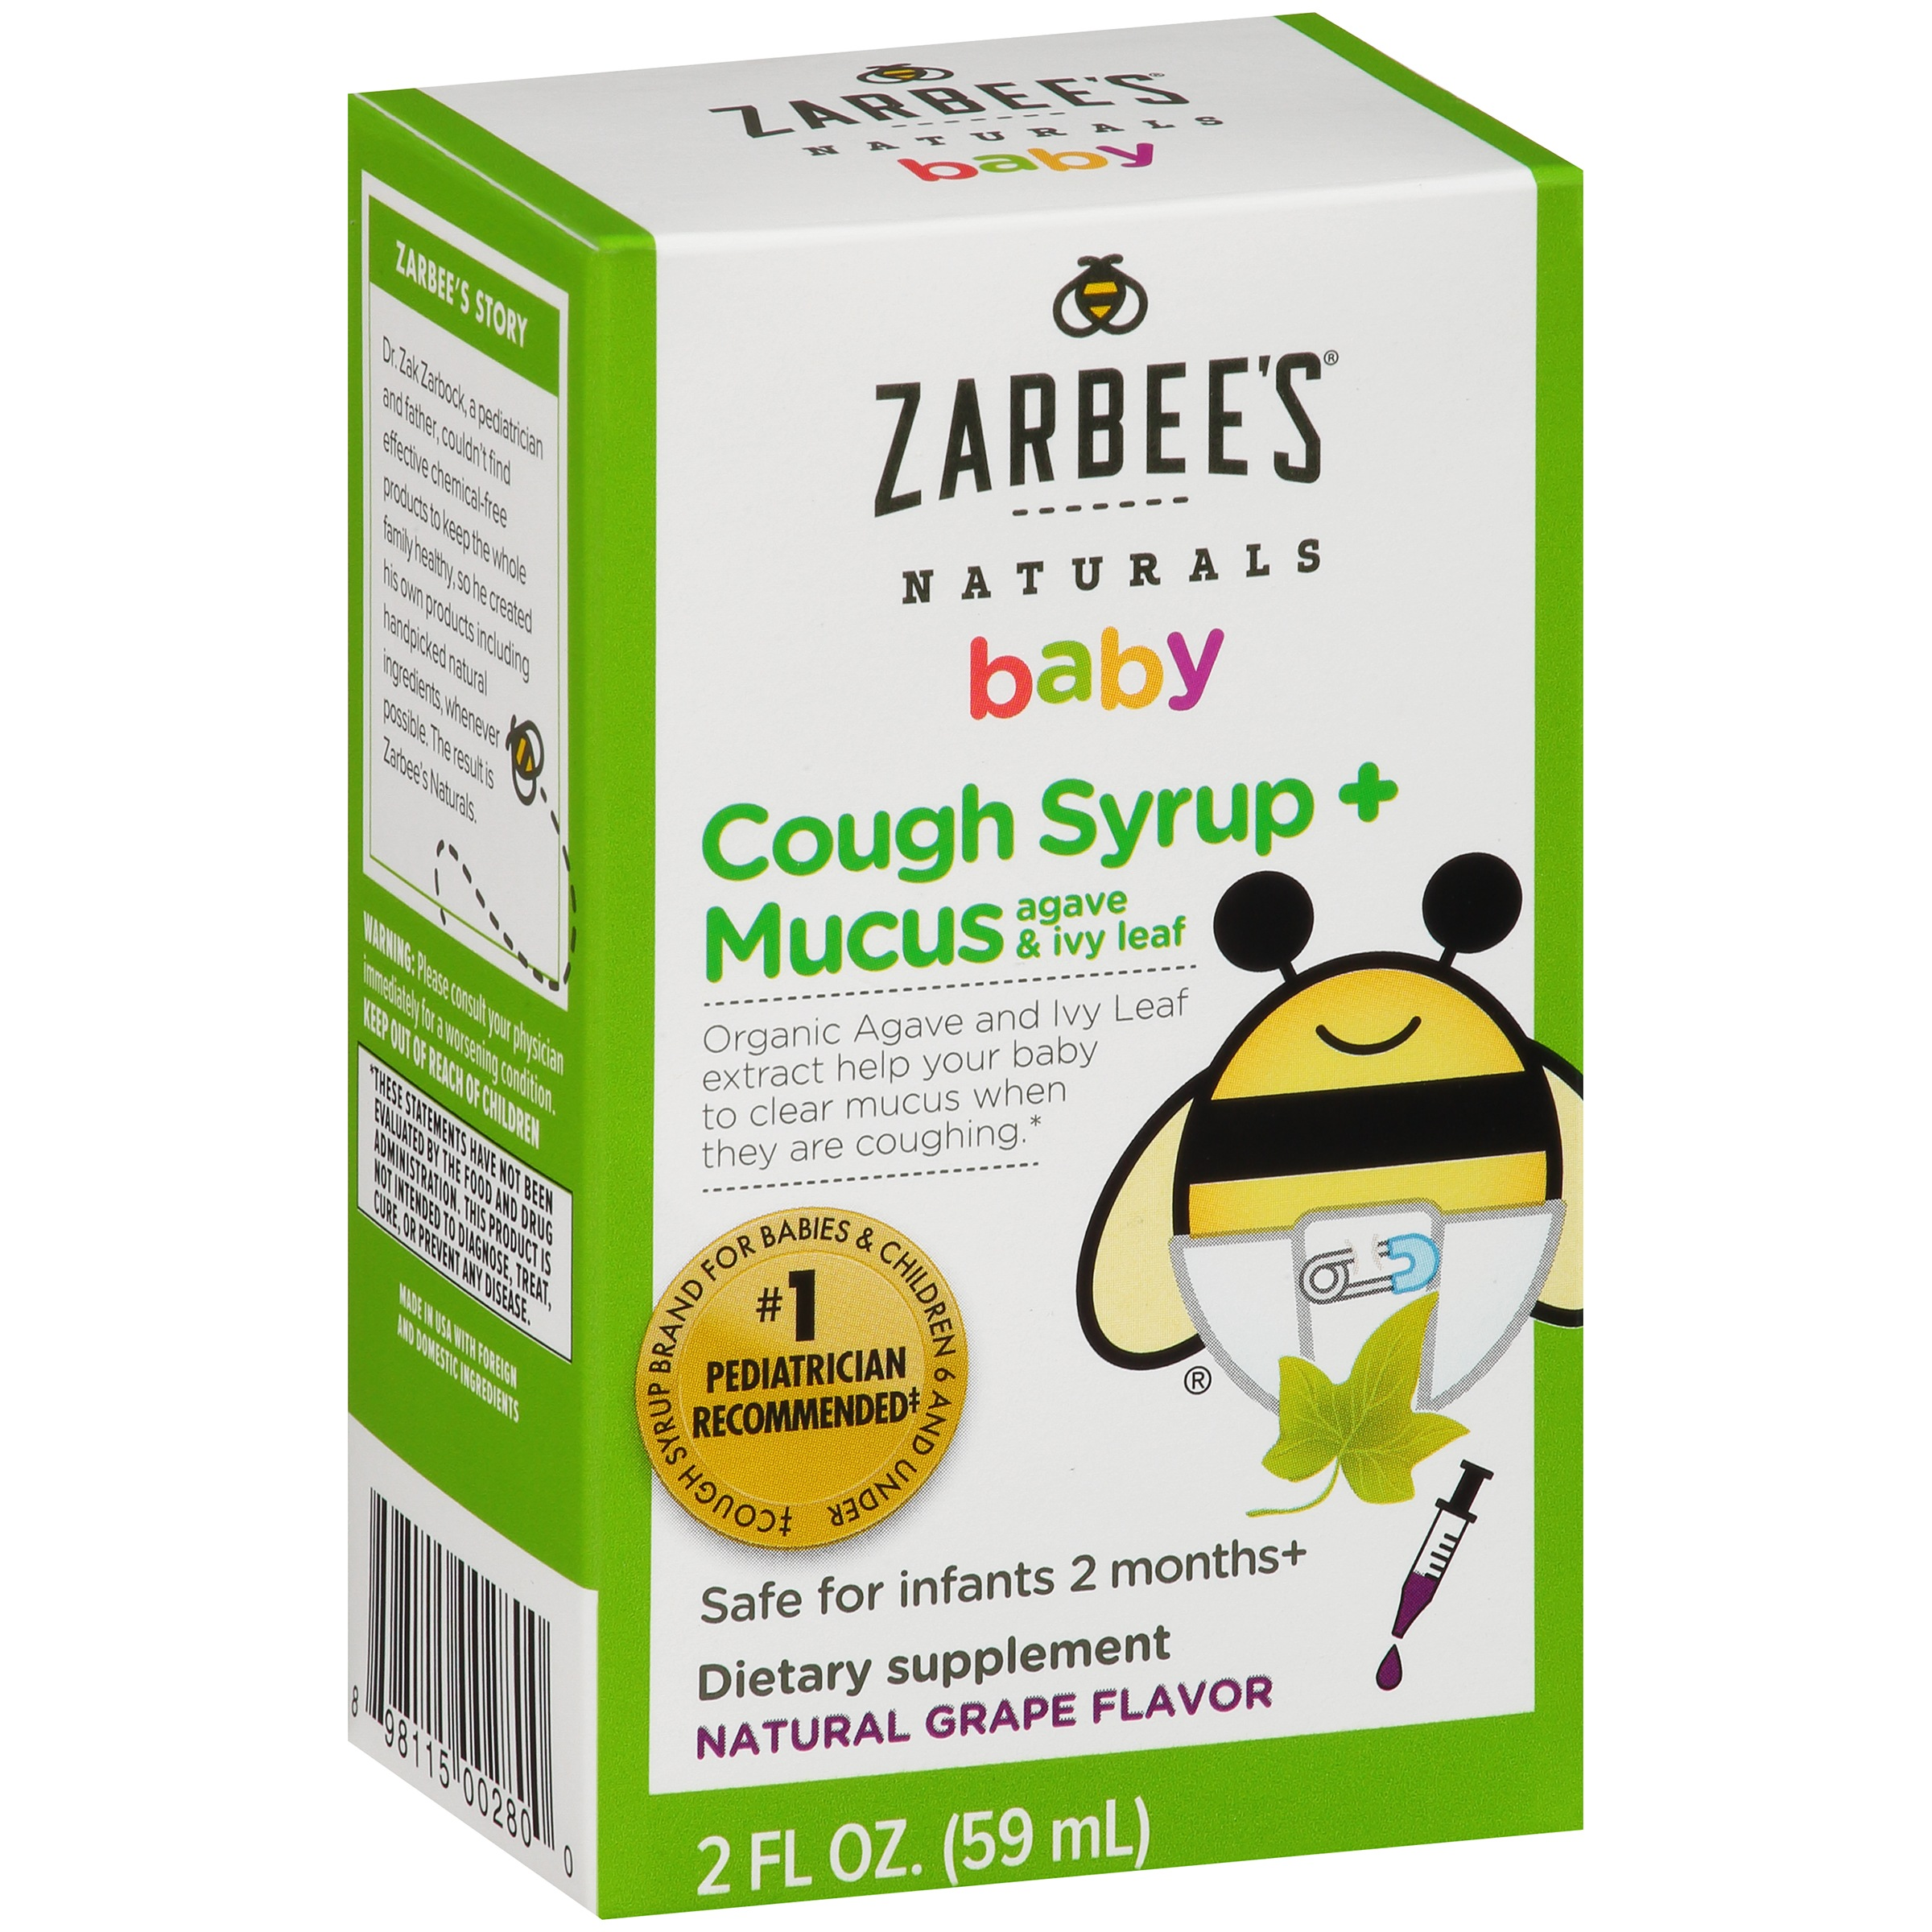 Zarbee's Naturals Baby Cough Syrup + Mucus Dietary Supplement Natural Grape Flavor, 2.0 FL OZ